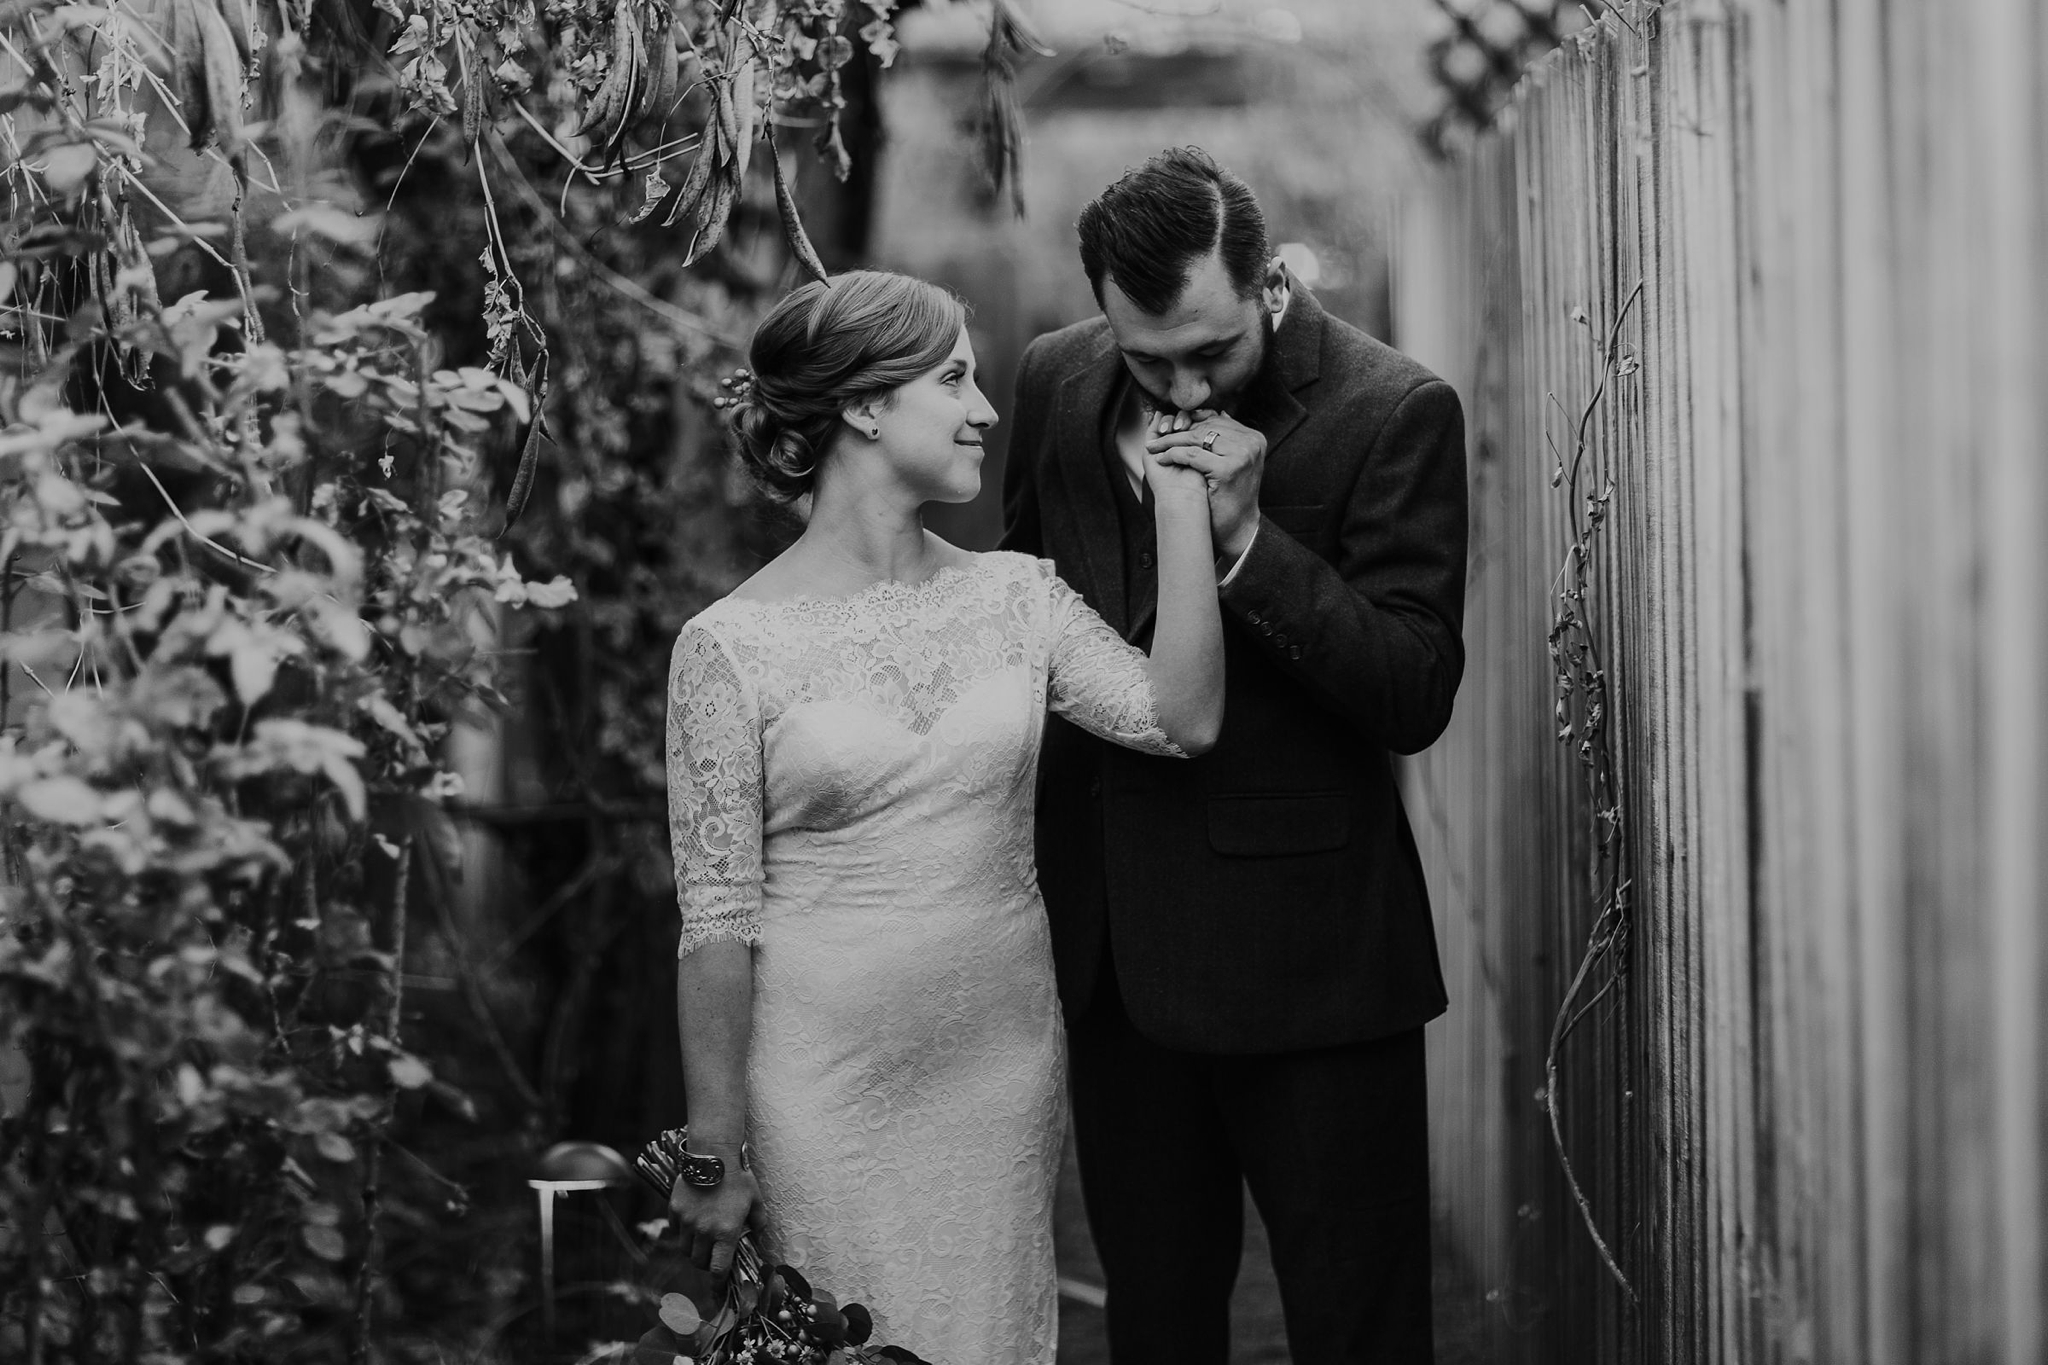 Alicia+lucia+photography+-+albuquerque+wedding+photographer+-+santa+fe+wedding+photography+-+new+mexico+wedding+photographer+-+albuquerque+wedding+-+sarabande+bed+breakfast+-+bed+and+breakfast+wedding_0082.jpg